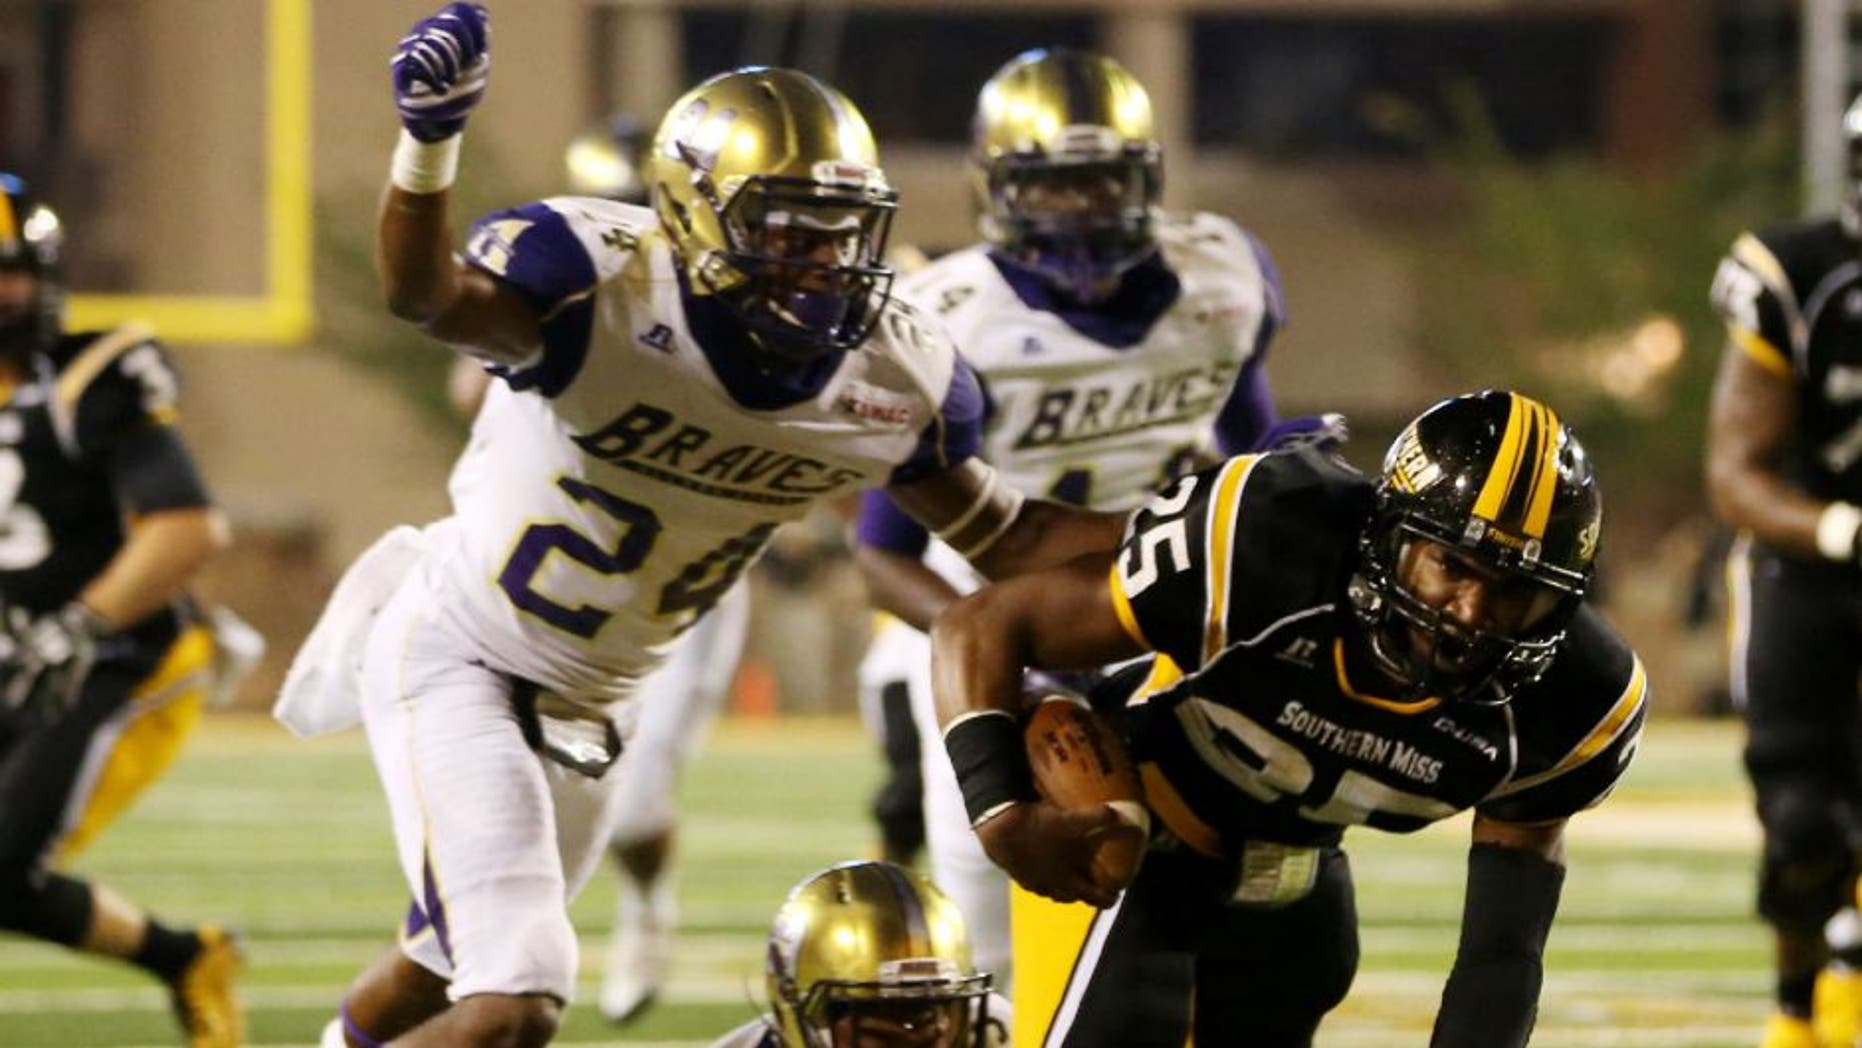 Southern Miss Golden Eagles running back Ito Smith runs with the ball as Alcorn State Braves defensive backs Warren Gatewood and Devon Francois close in.